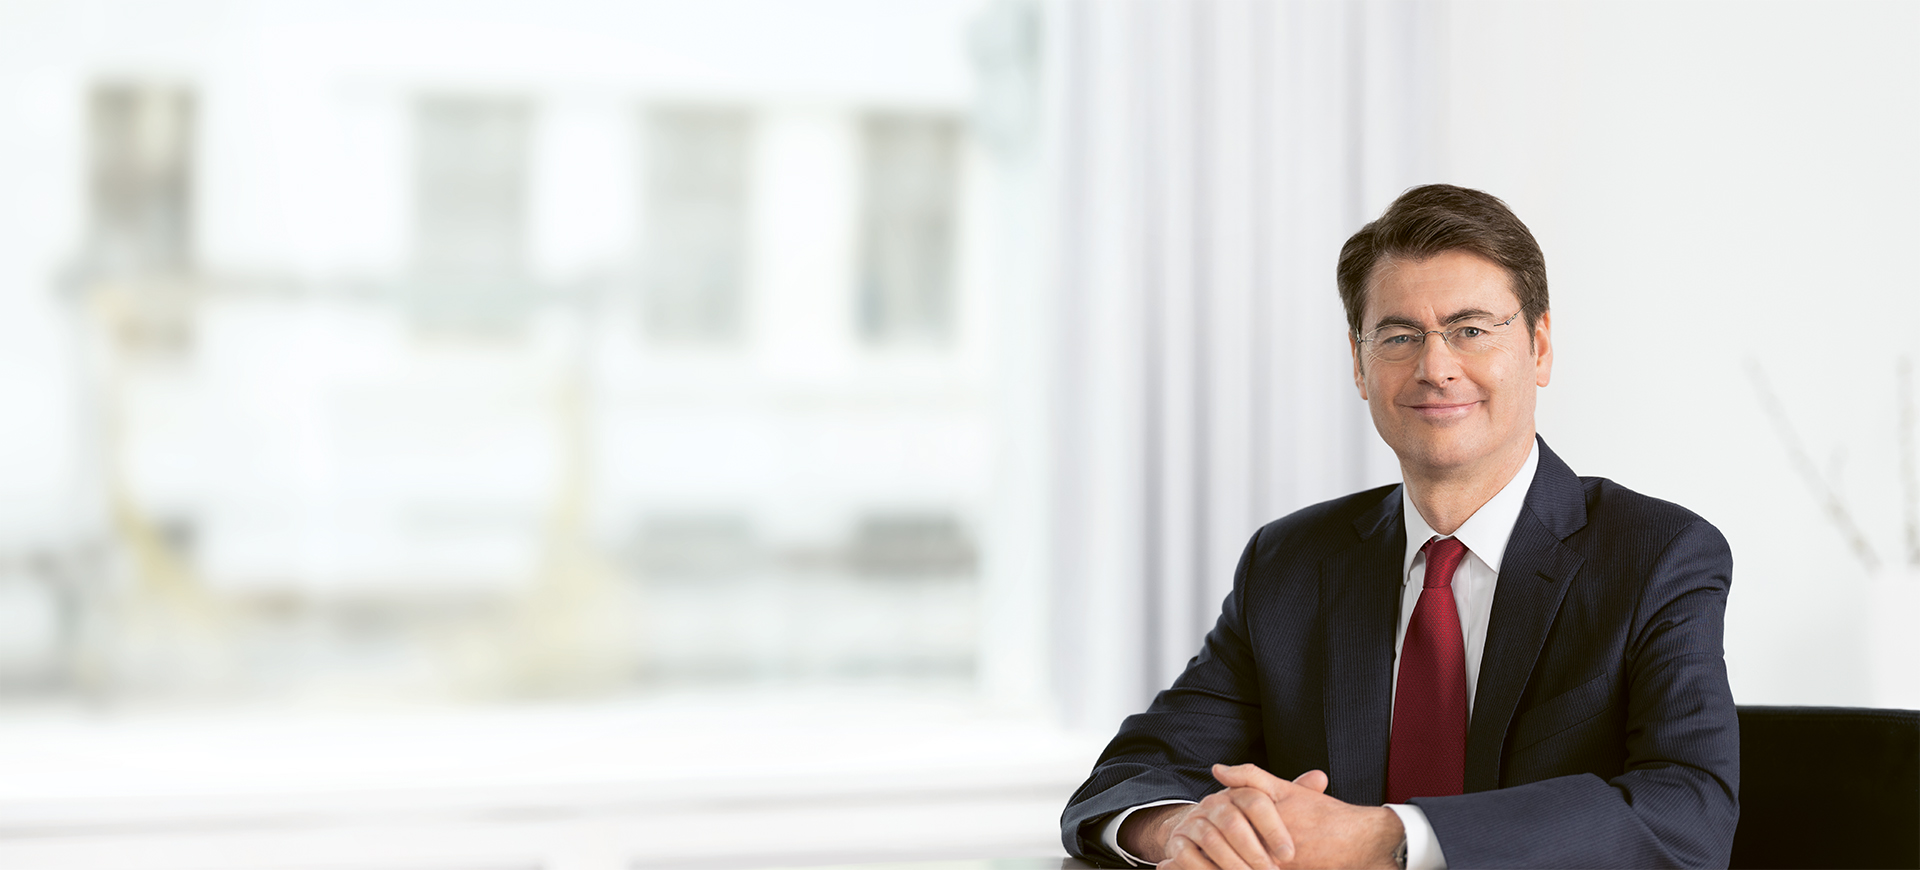 Author: Gérard Piasko, Chief Investment Officer